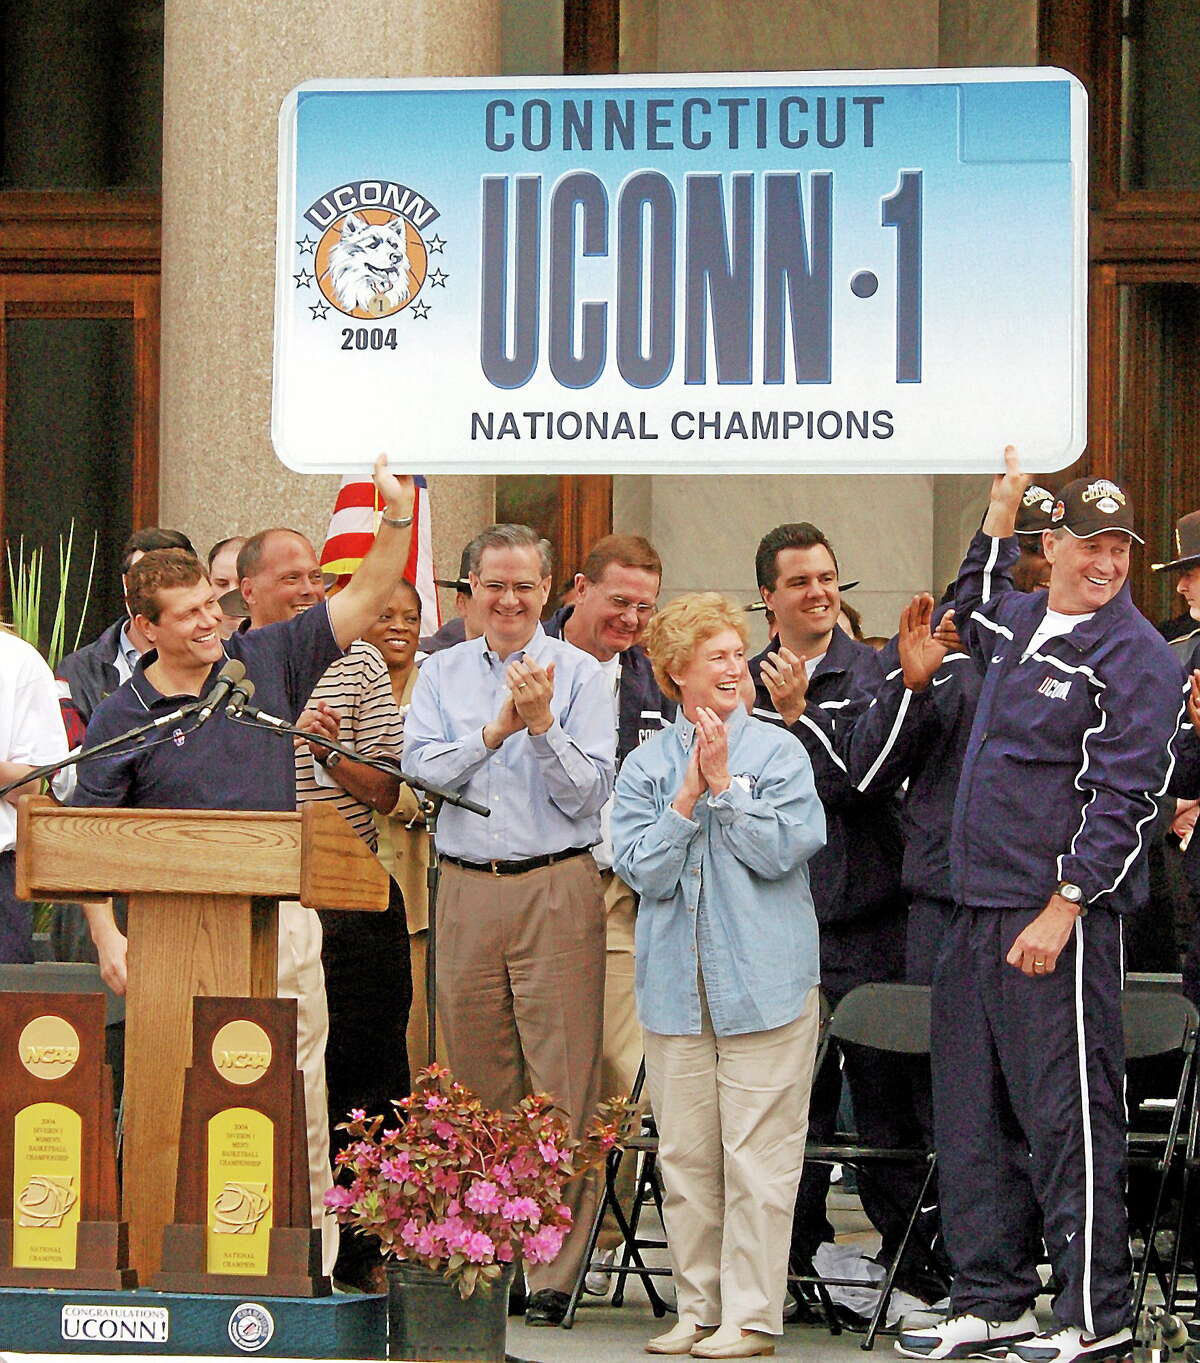 Geno Auriemma, left, and Jim Calhoun hold up a novelty license plate celebrating both the men's and women's national titles at a parade and rally in Hartford on April 18, 2004.